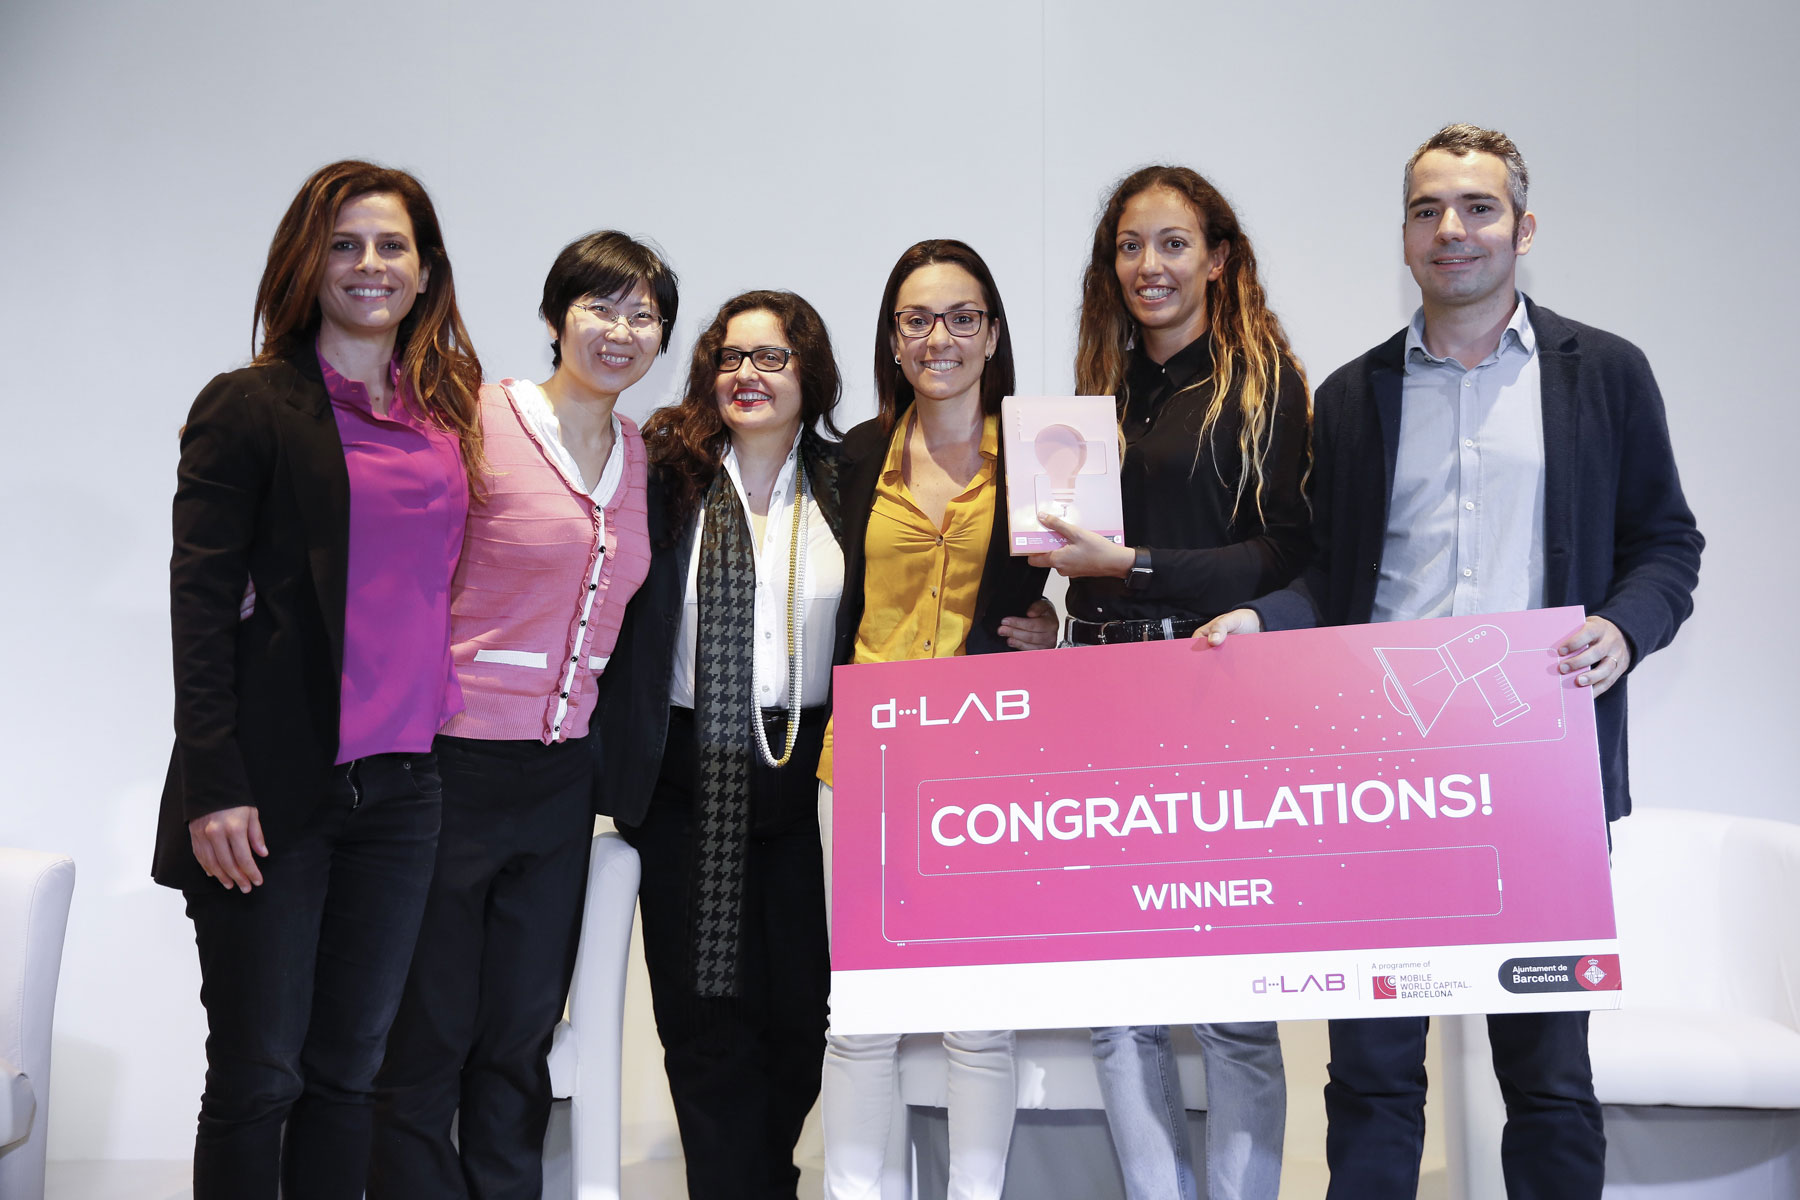 https://d-lab.tech/wp-content/uploads/2018/10/Women-in-tech-Premios-d-Lab_18.10.jpg